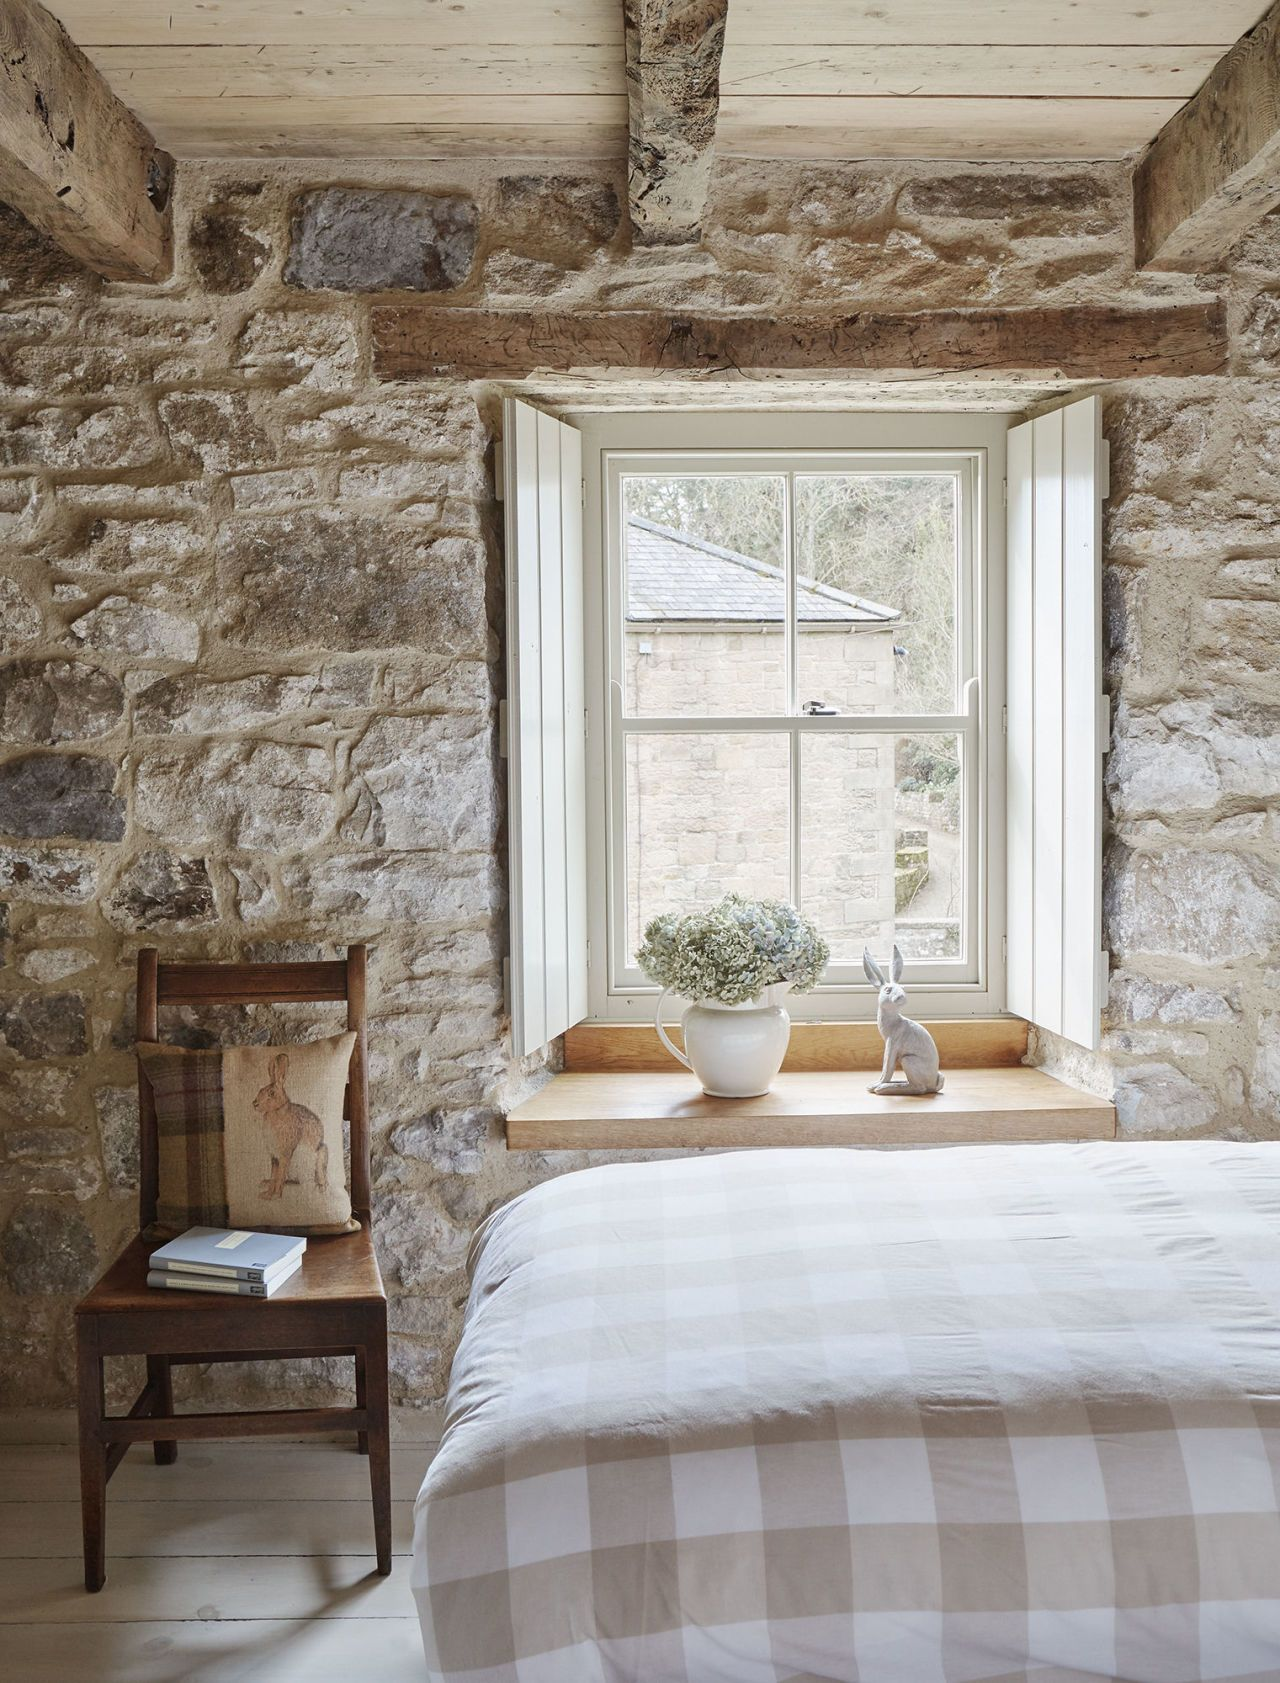 love the thick walls not really the exposed stone deeply recessed windows and